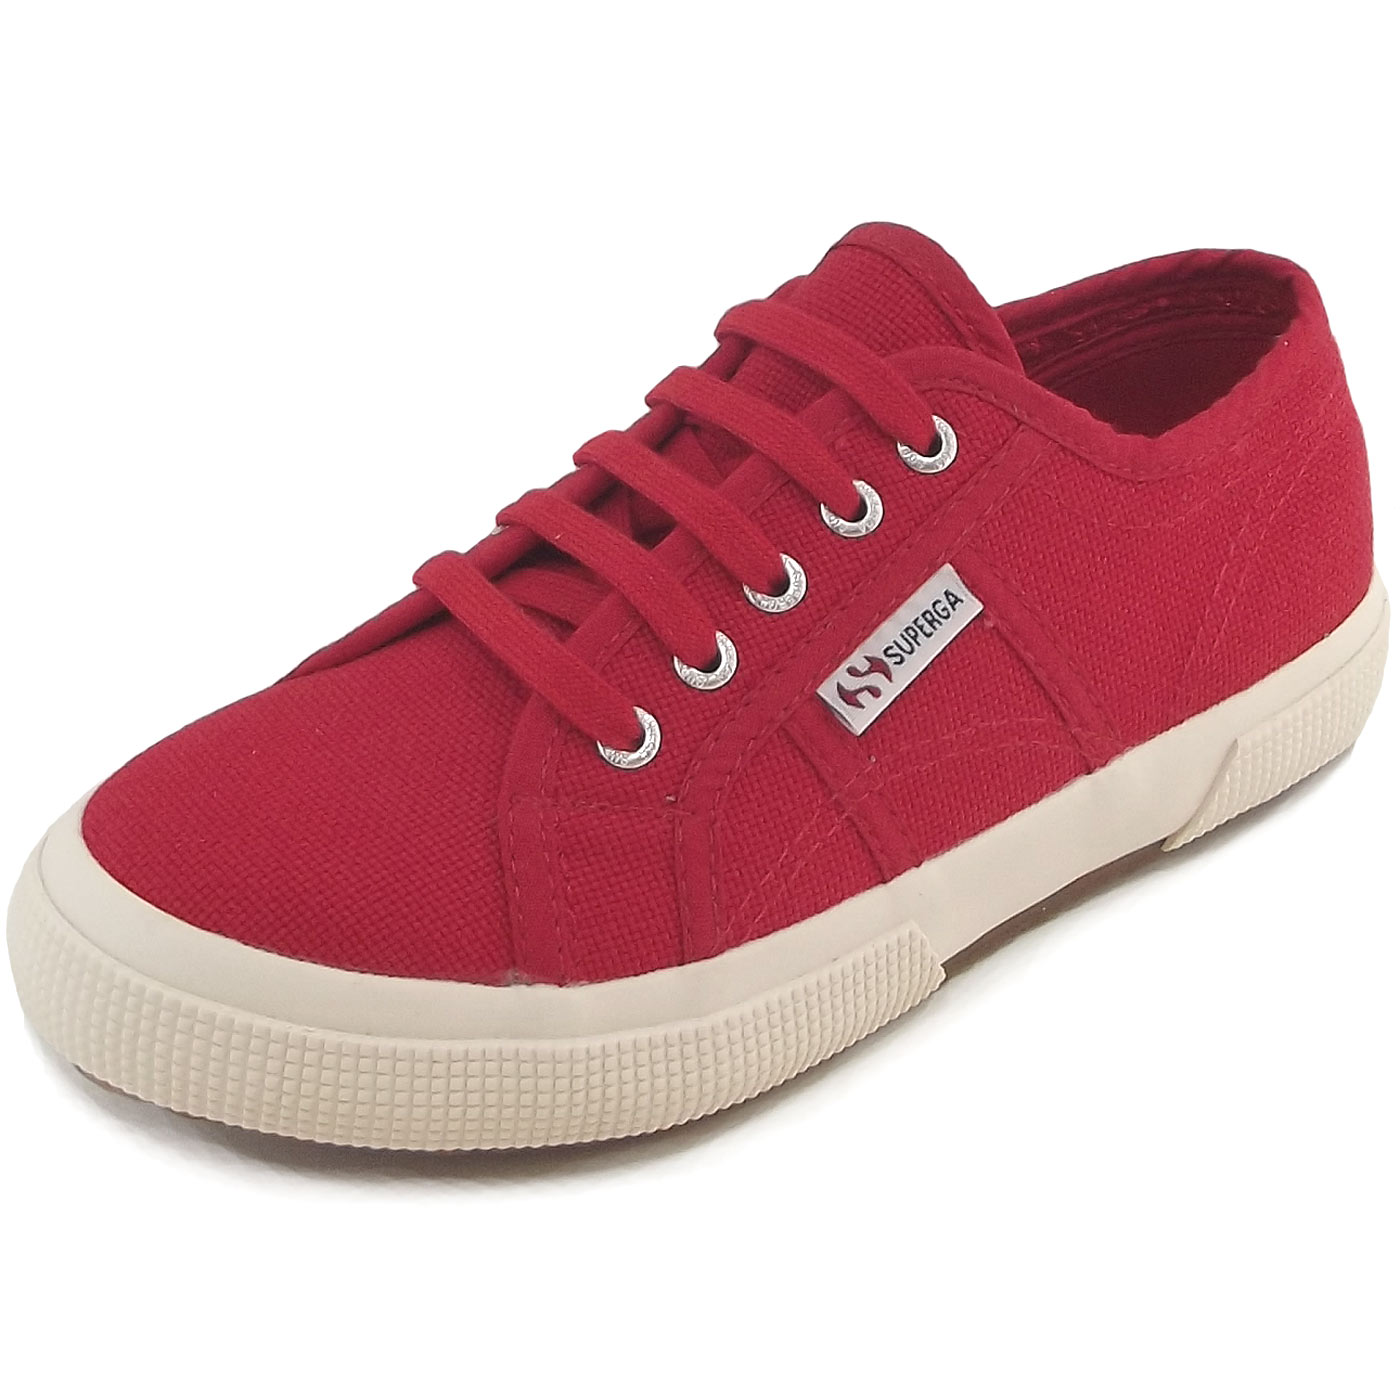 Superga 2750 Junior Cotu Classic Kinder Sneaker rot (red), Gr. 31 EU / 12.5 UK Y